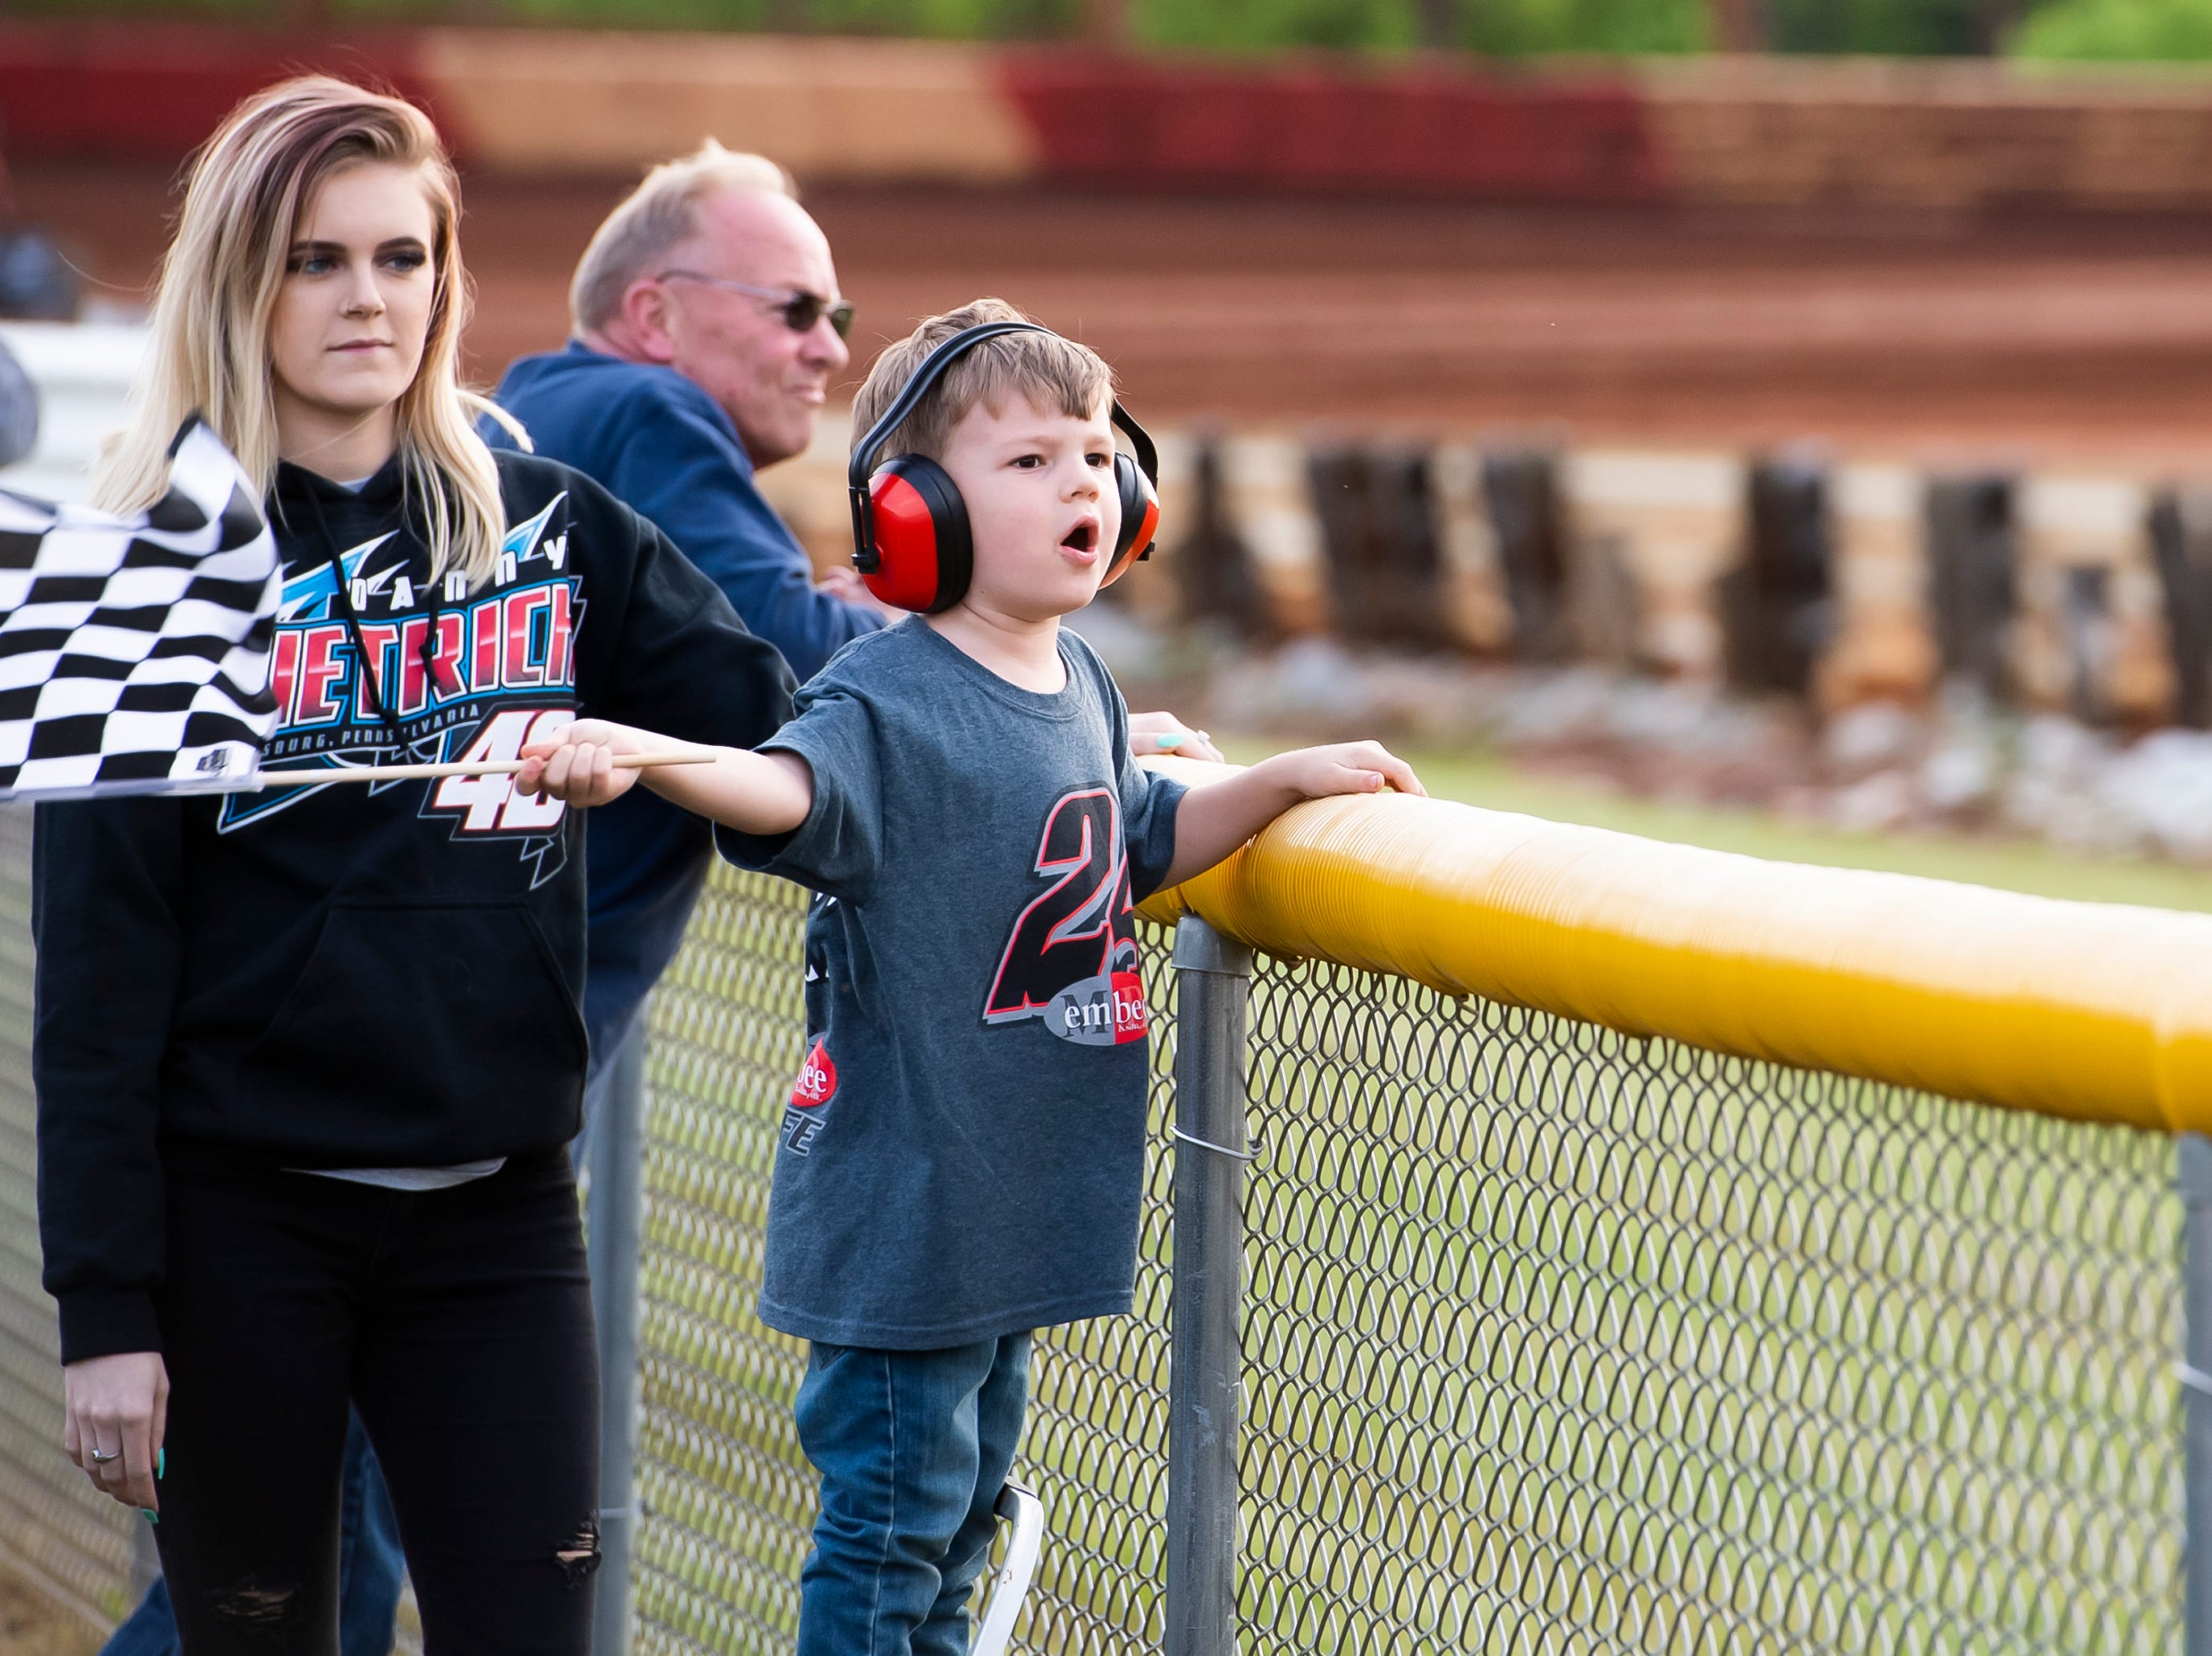 Landon Nickol, 3, of Dover, waves a checkered flag as his mother, Taylor Fowler, looks on as drivers race in the time trials during the World of Outlaws Gettysburg Clash at Lincoln Speedway in Abbottstown on Wednesday, May 15, 2019.